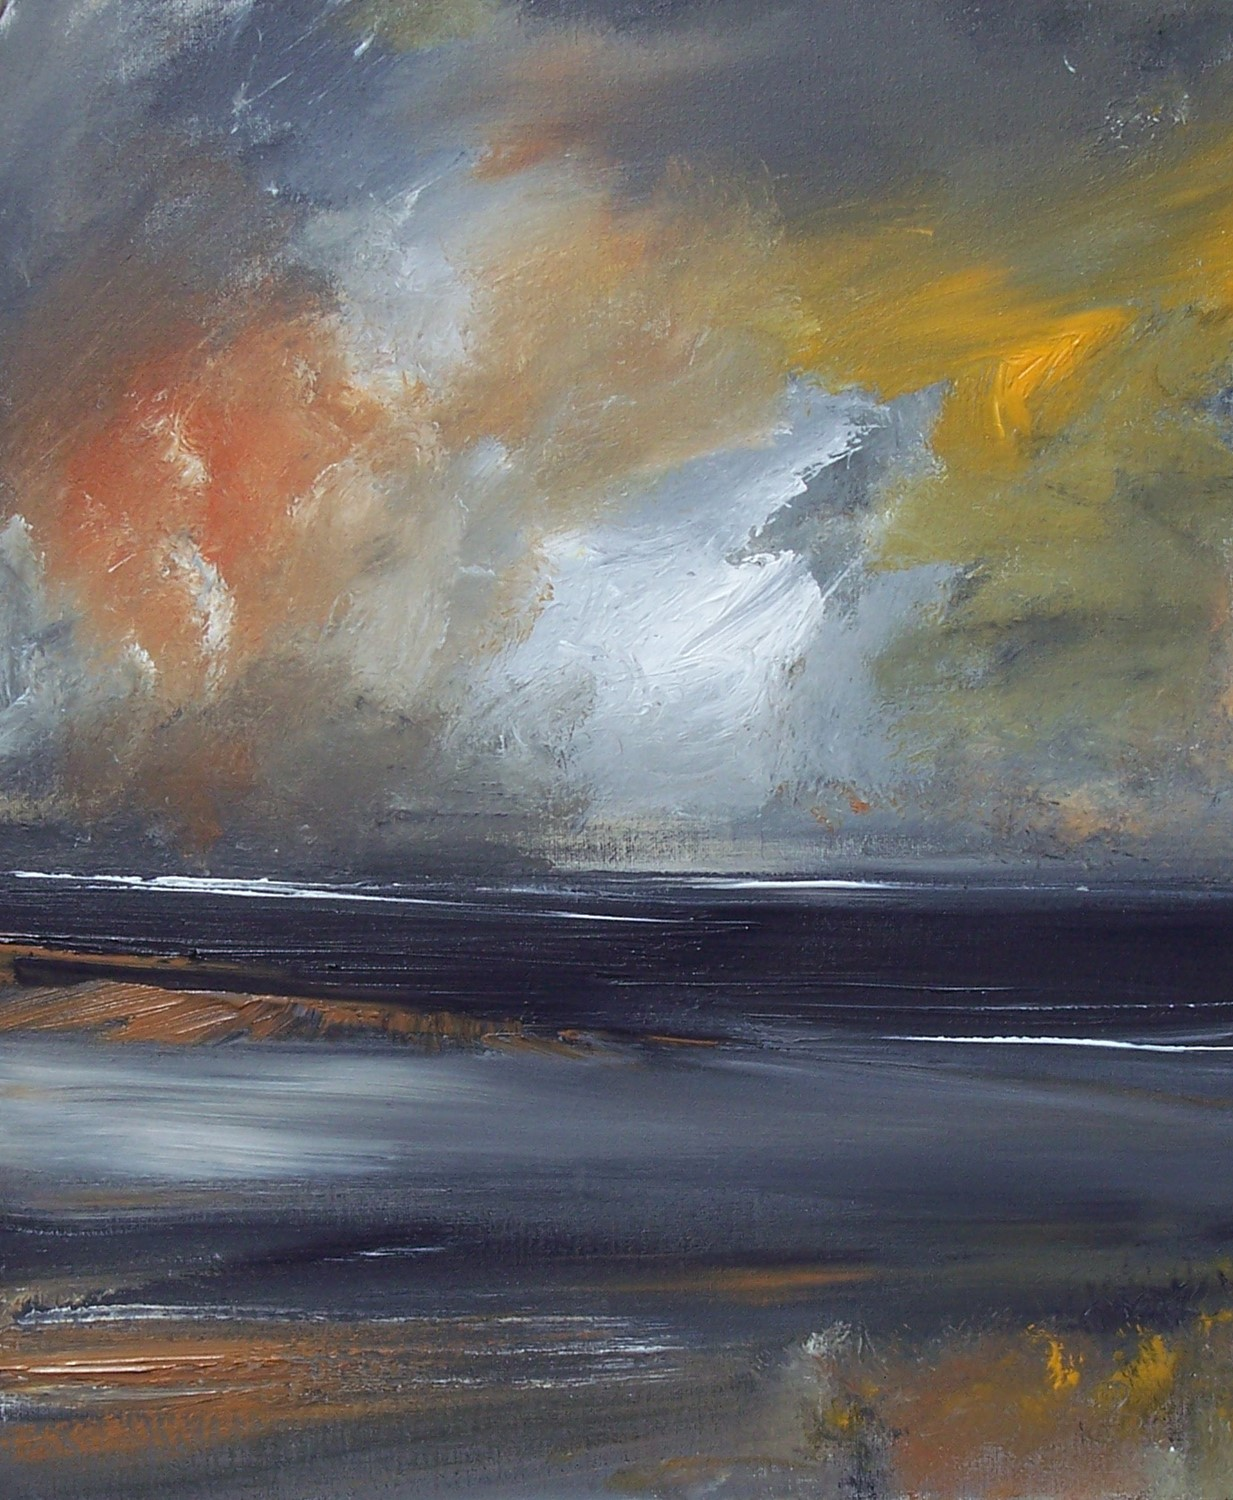 'Brooding storms' by artist Rosanne Barr